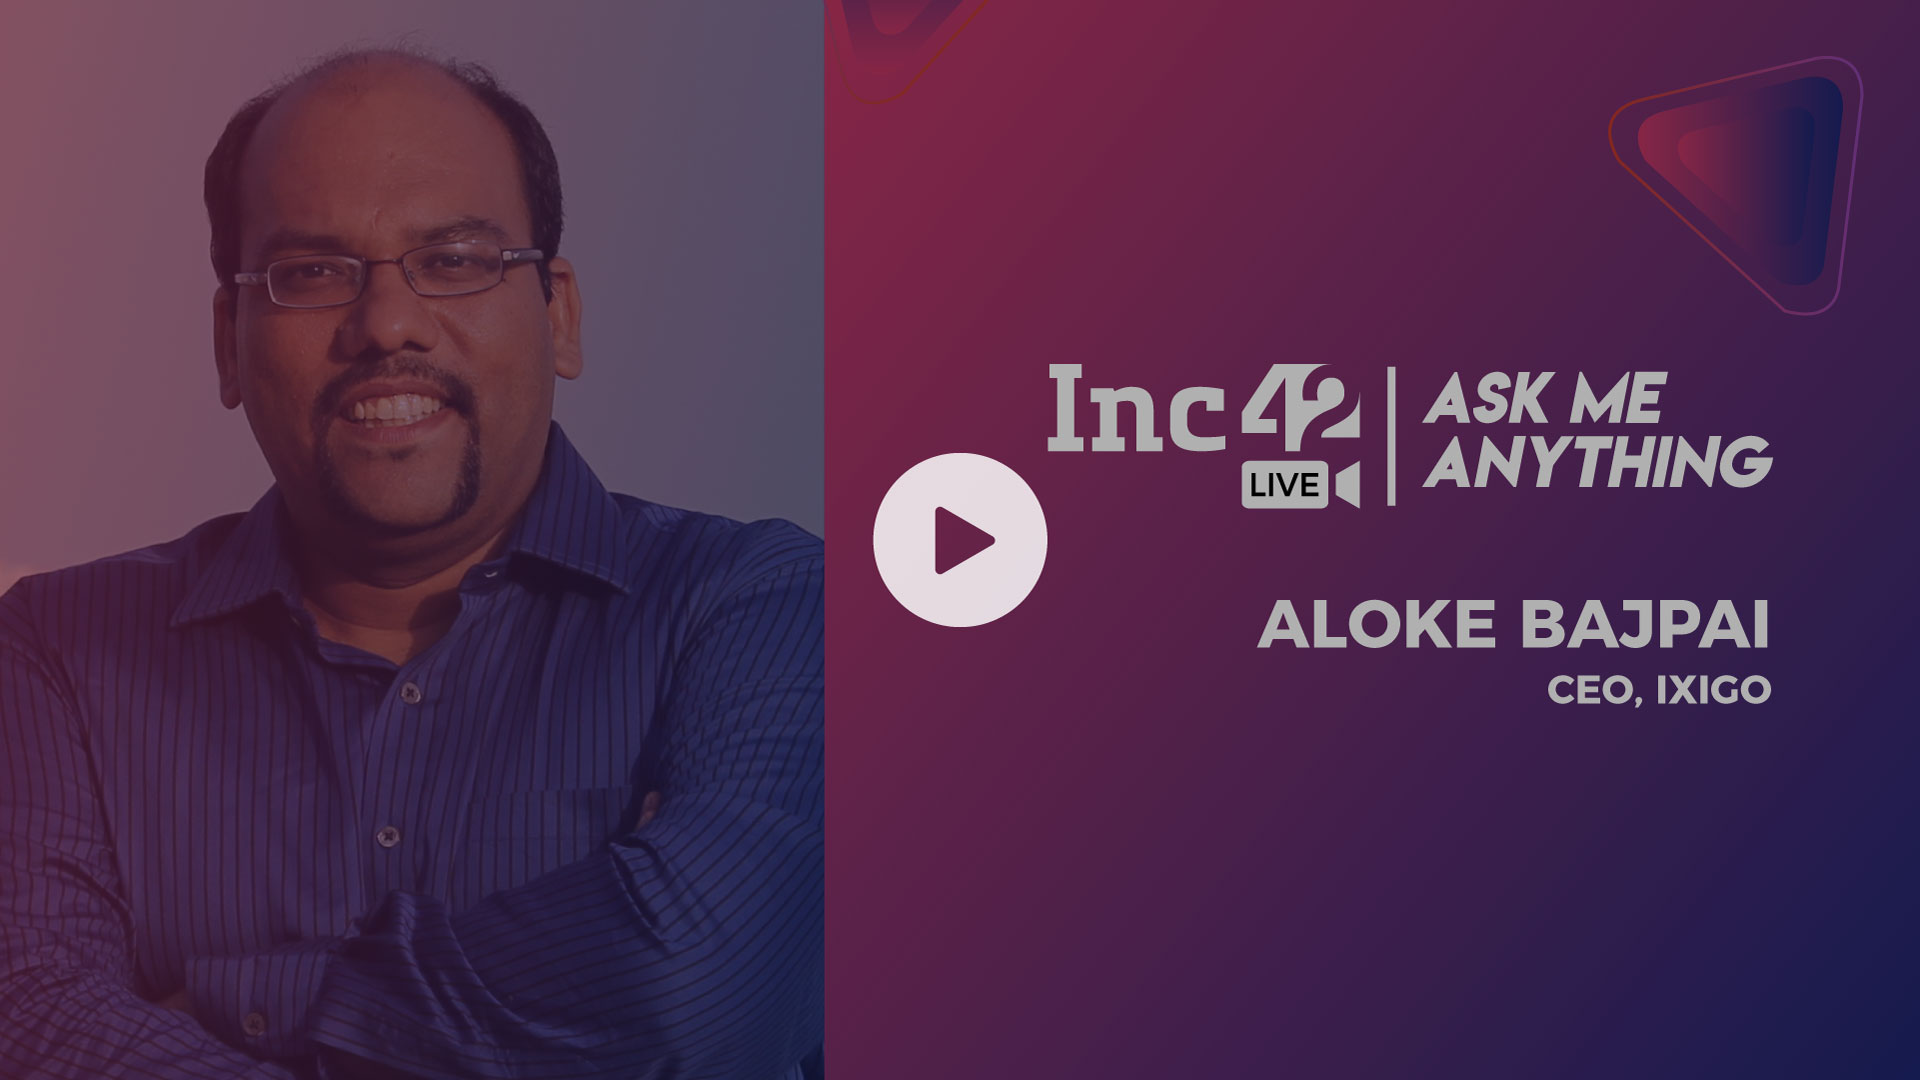 Aloke-Bajpai-Set-playbutton-1920x1080